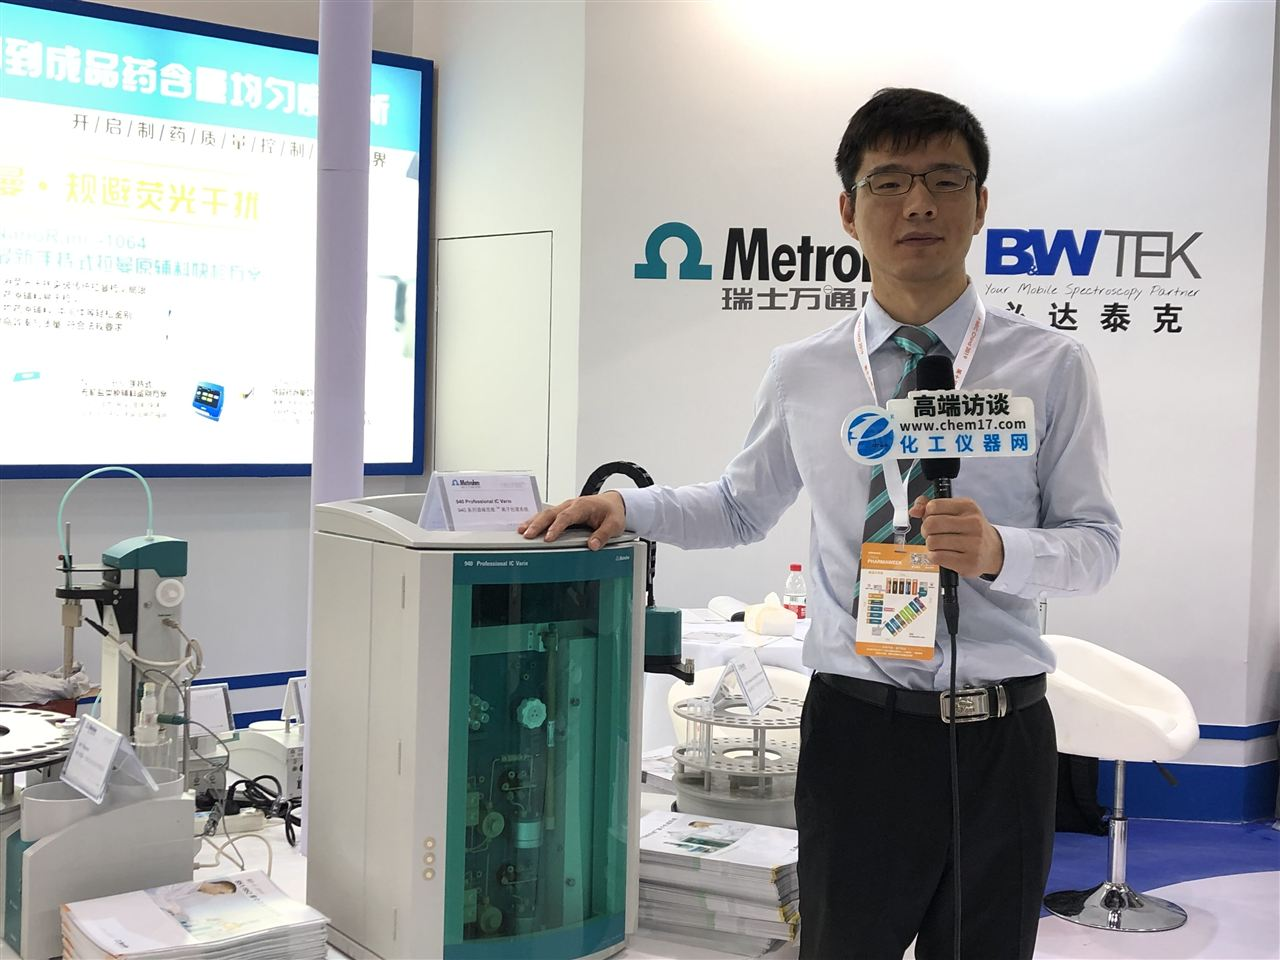 瑞士�f通亮相LABWorld China 2019